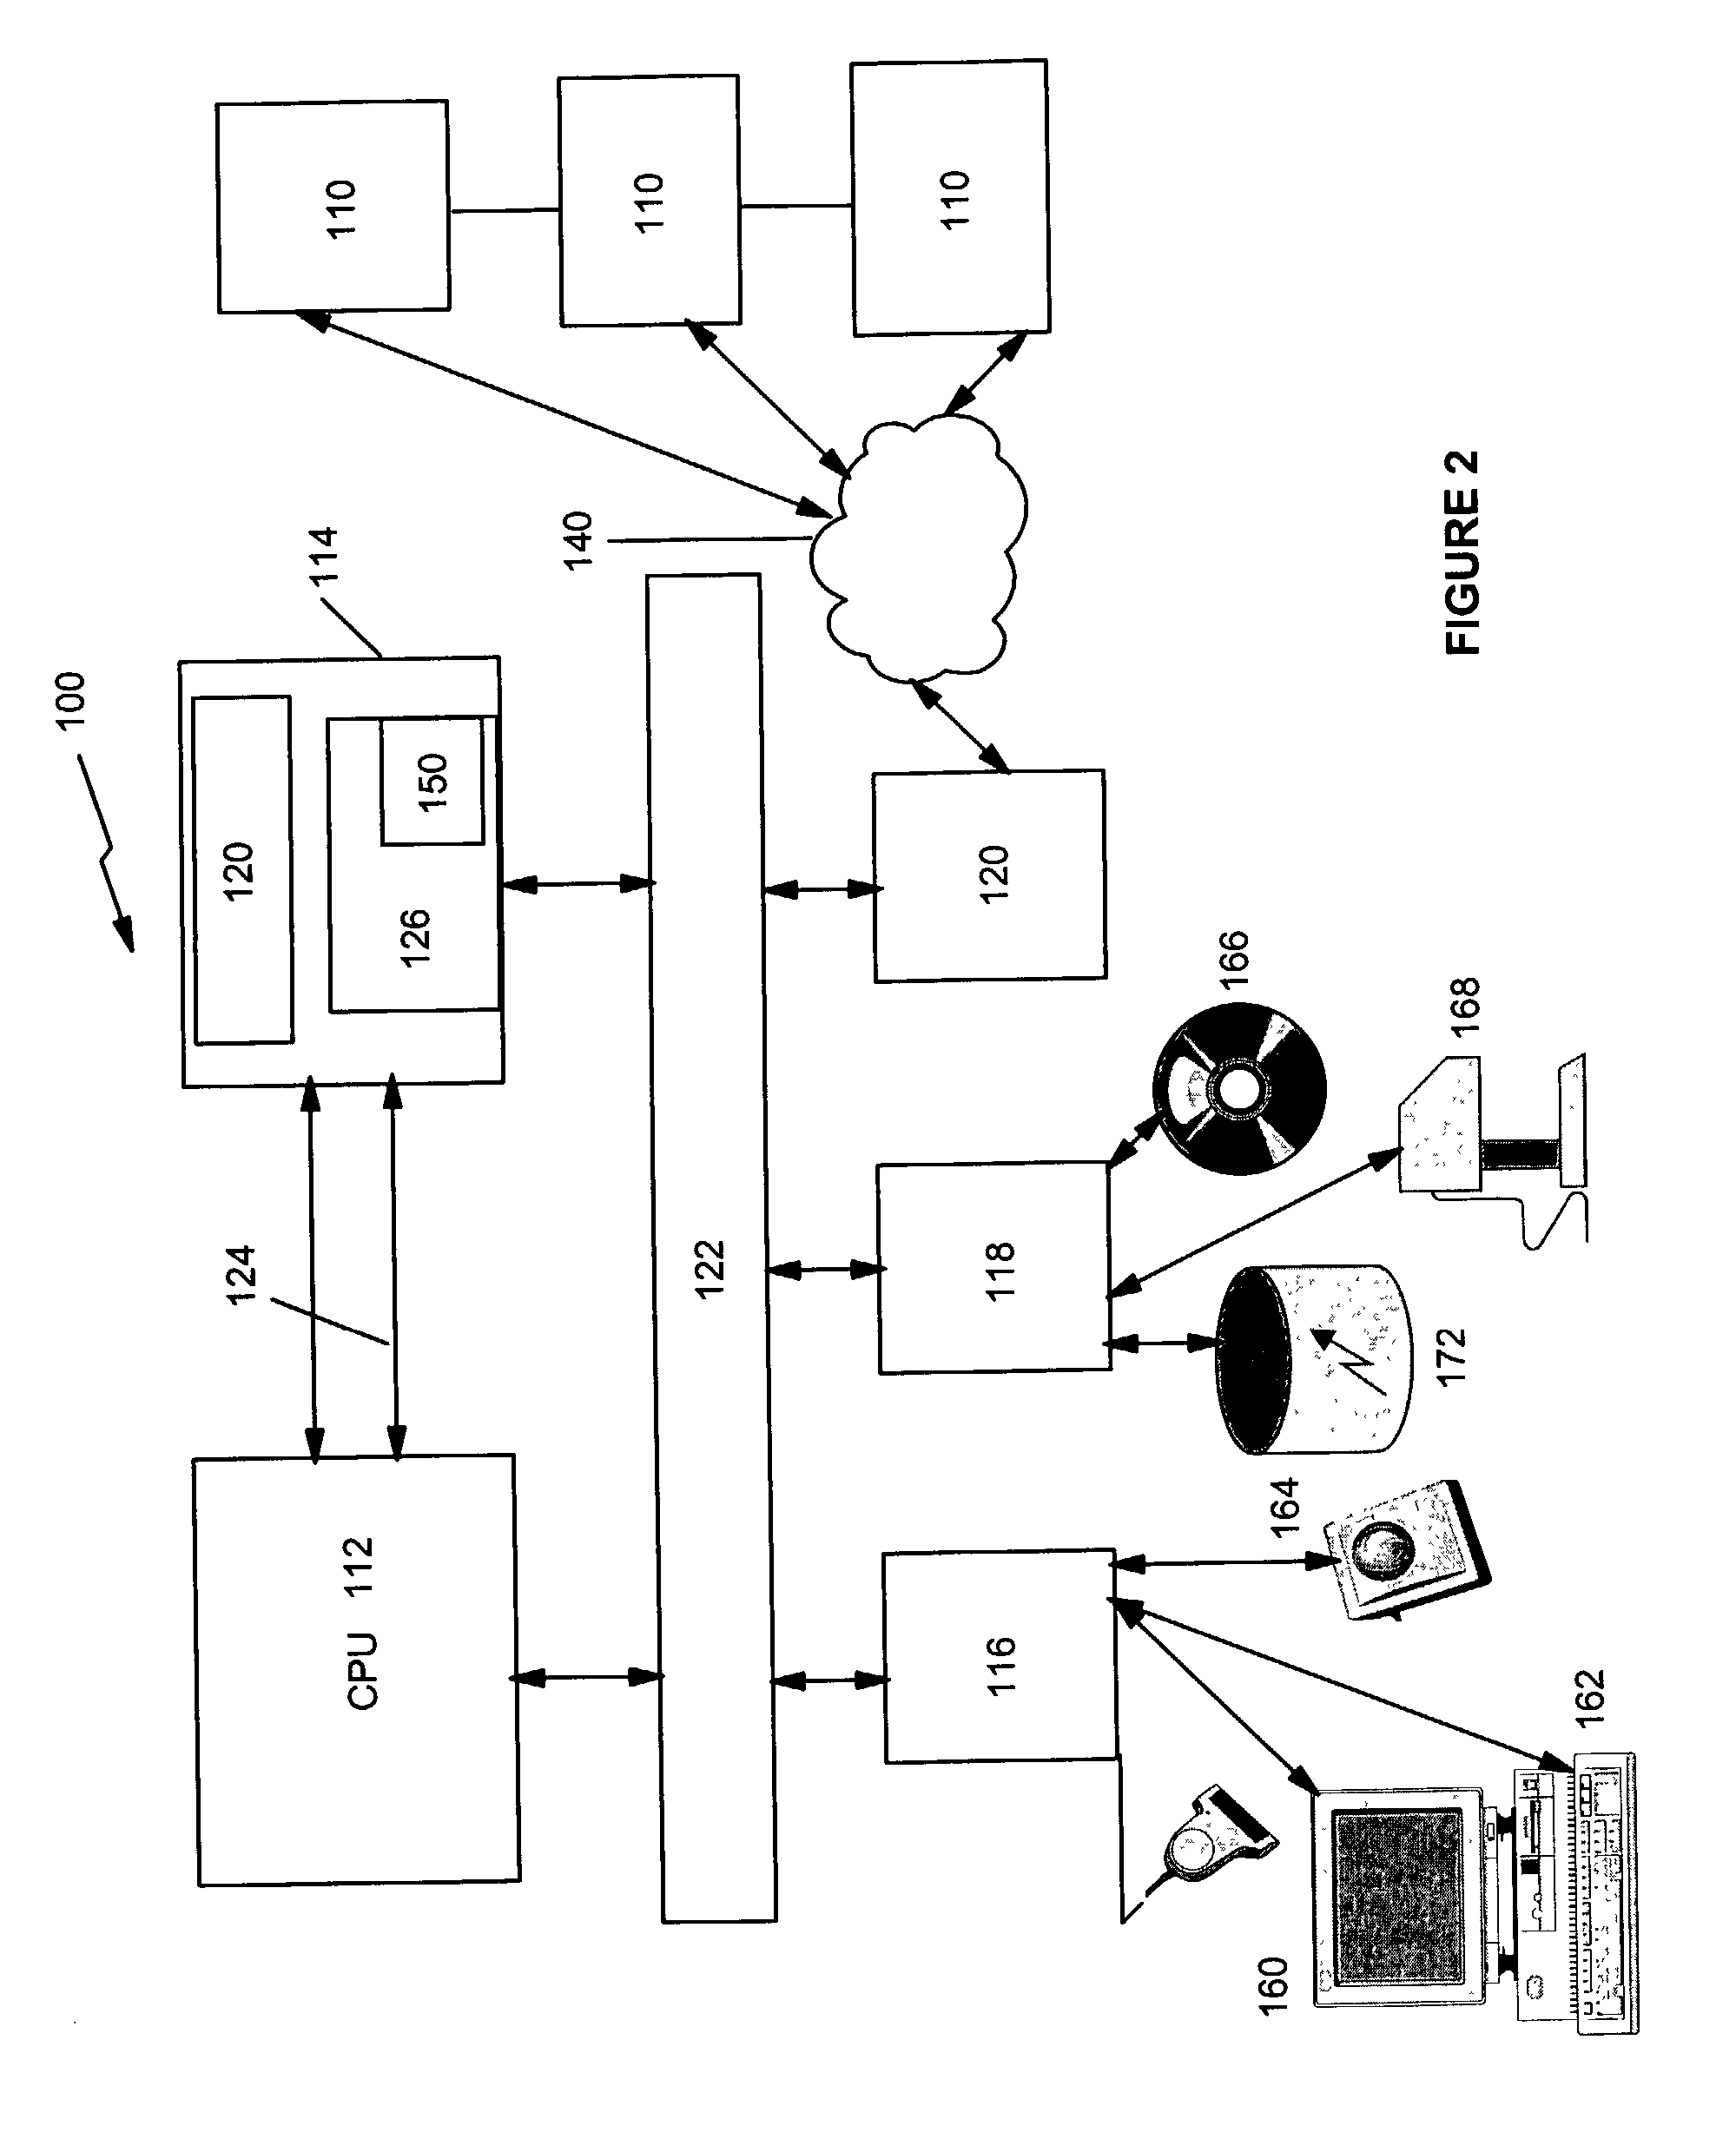 patent drawing - As400 Computer System